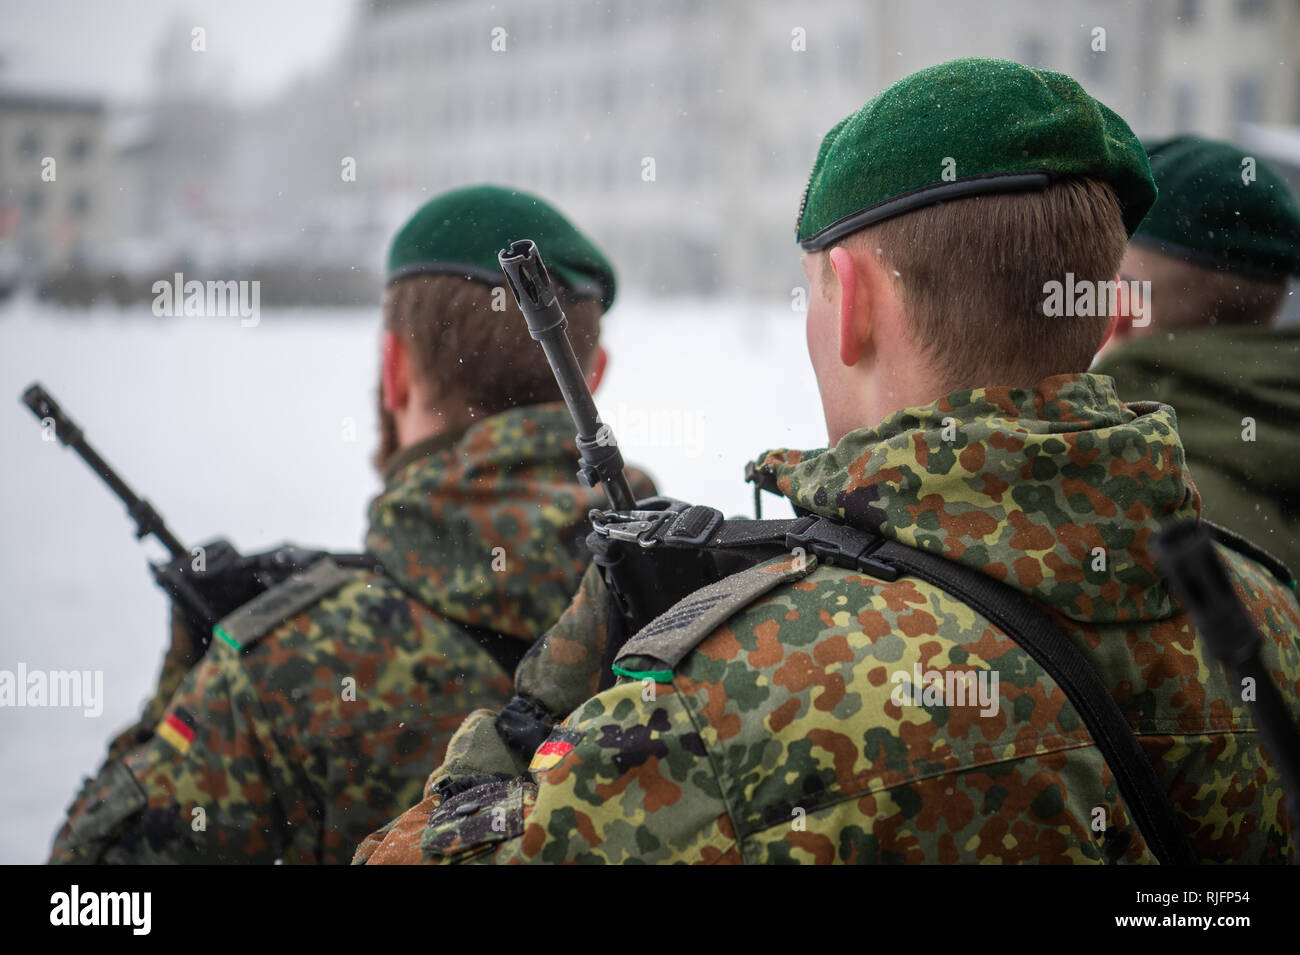 Rukla, Lithuania. 04th Feb, 2019. Soldiers of the German Armed Forces took part in a handover appeal at the military base in Rukla, Lithuania. Credit: Arne Immanuel Bänsch/dpa/Alamy Live News - Stock Image